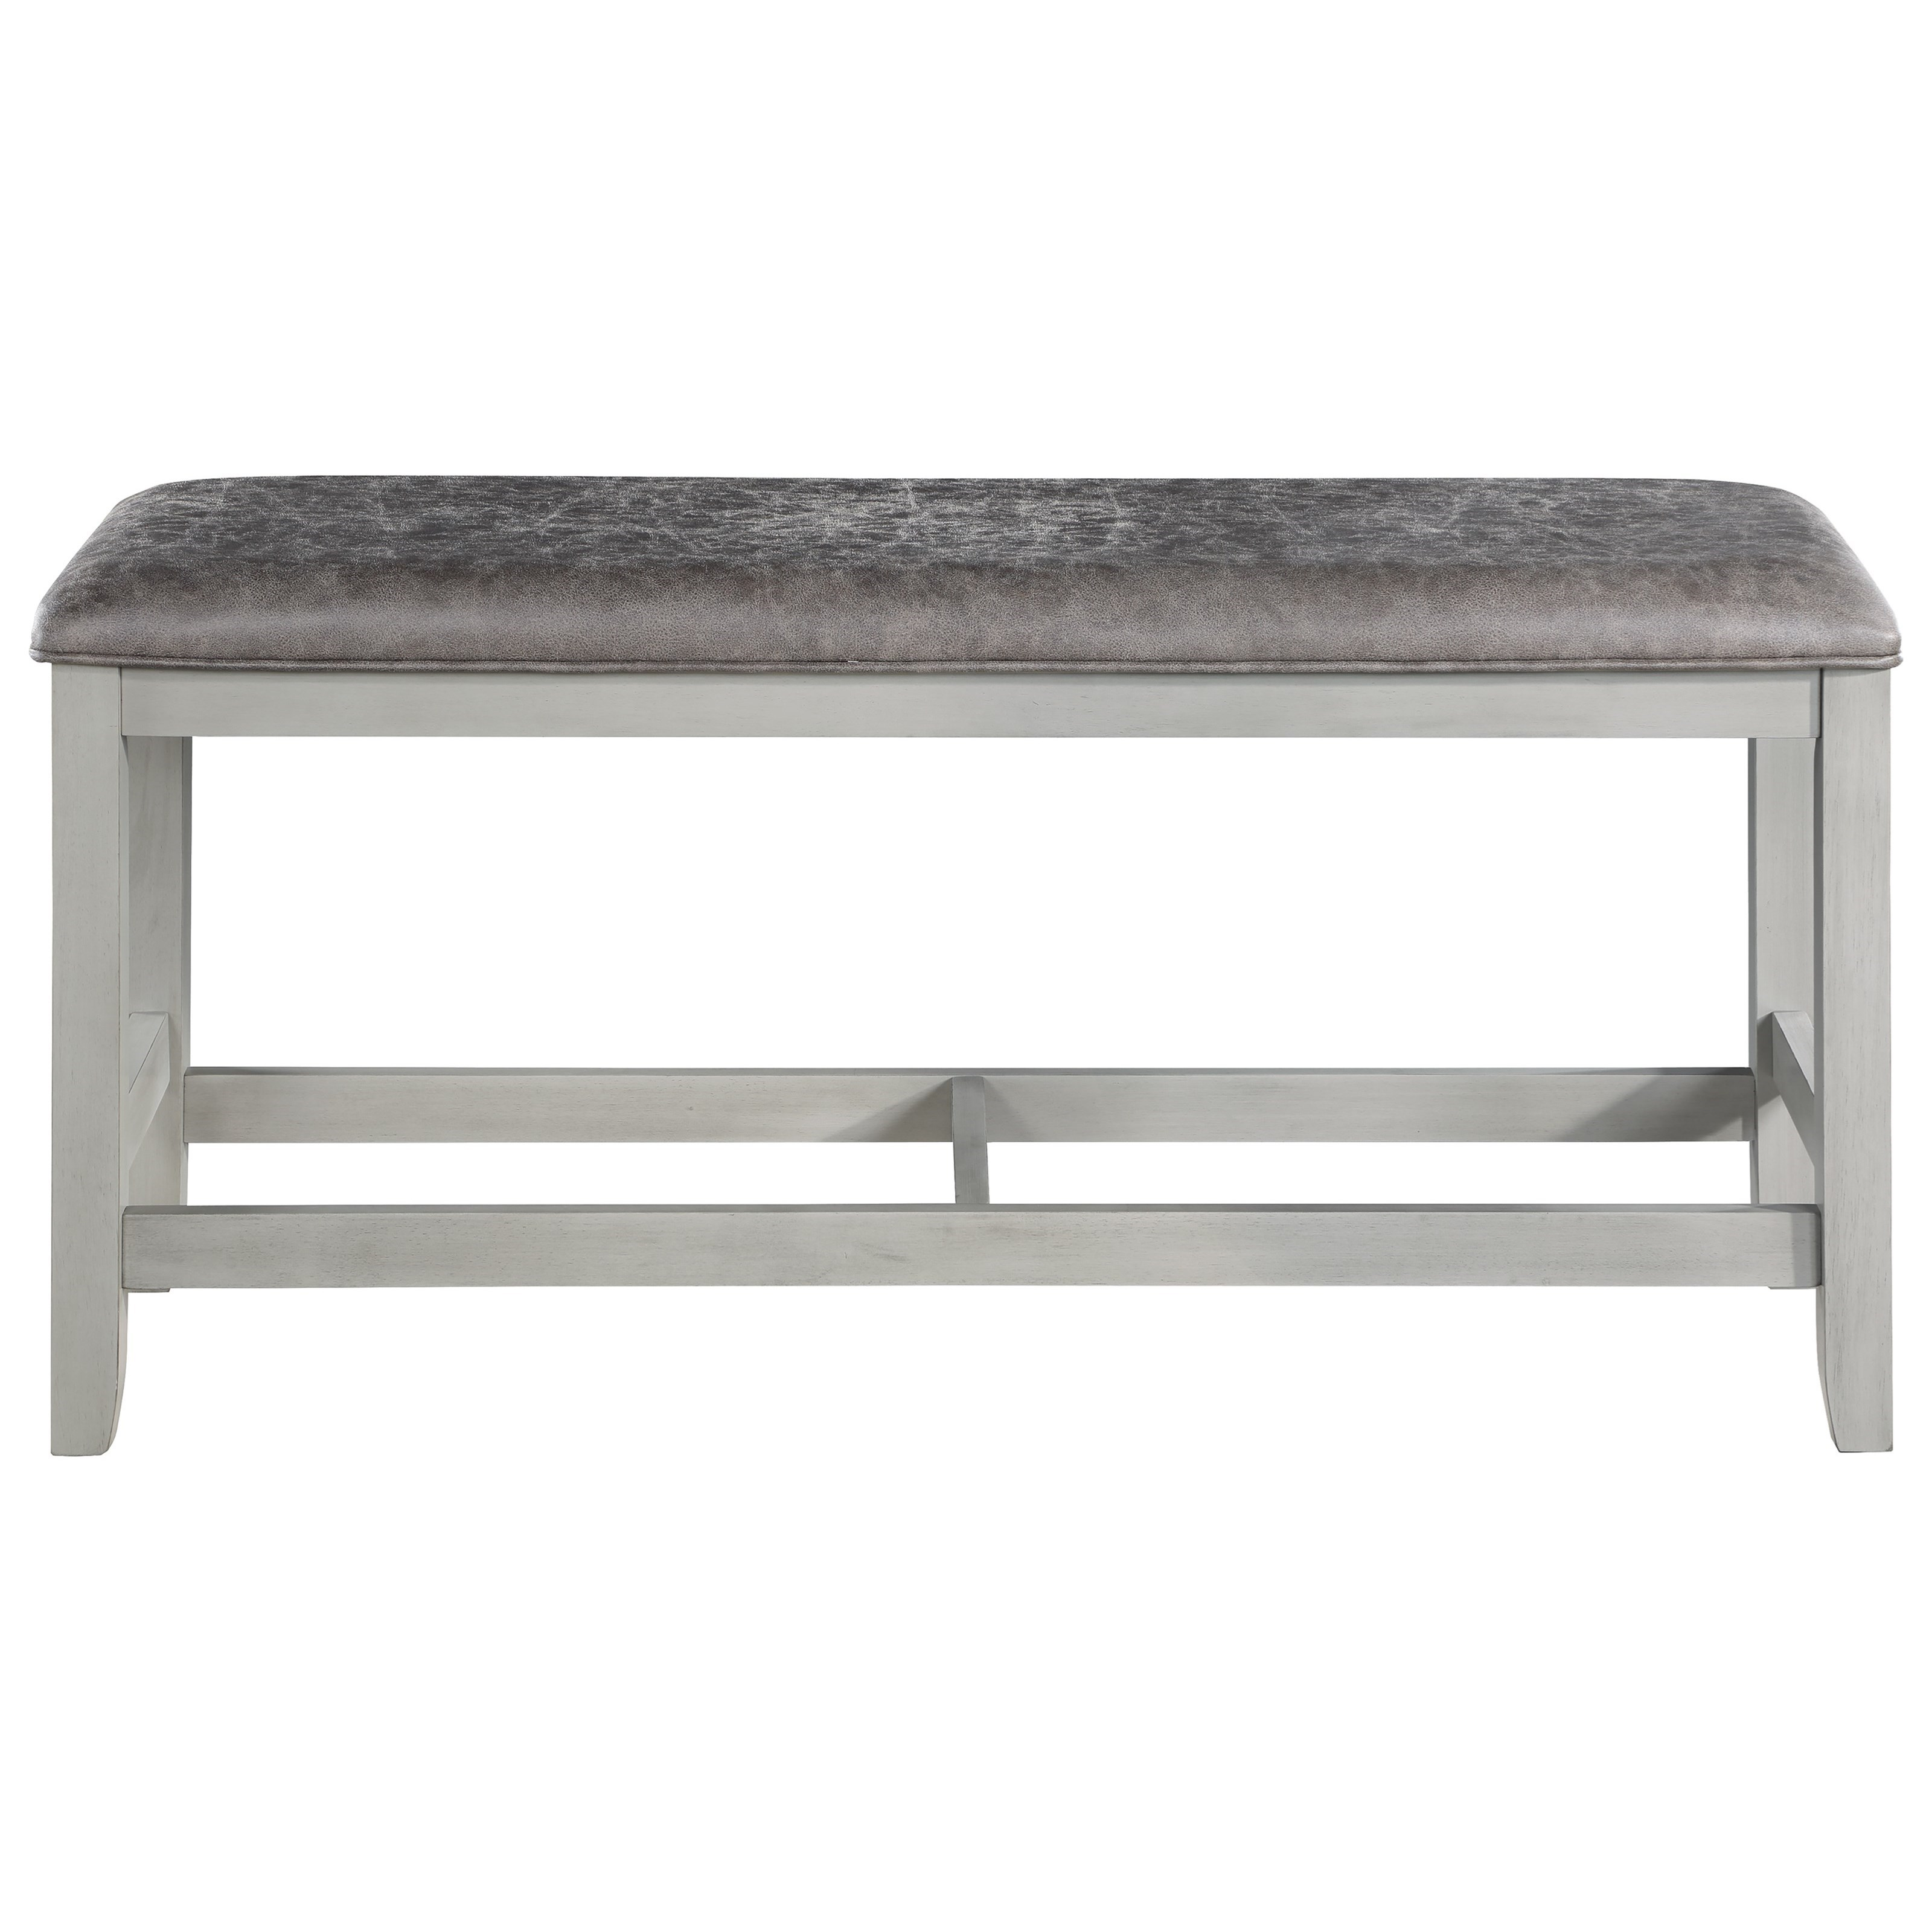 Hyland Counter Bench by Steve Silver at Northeast Factory Direct